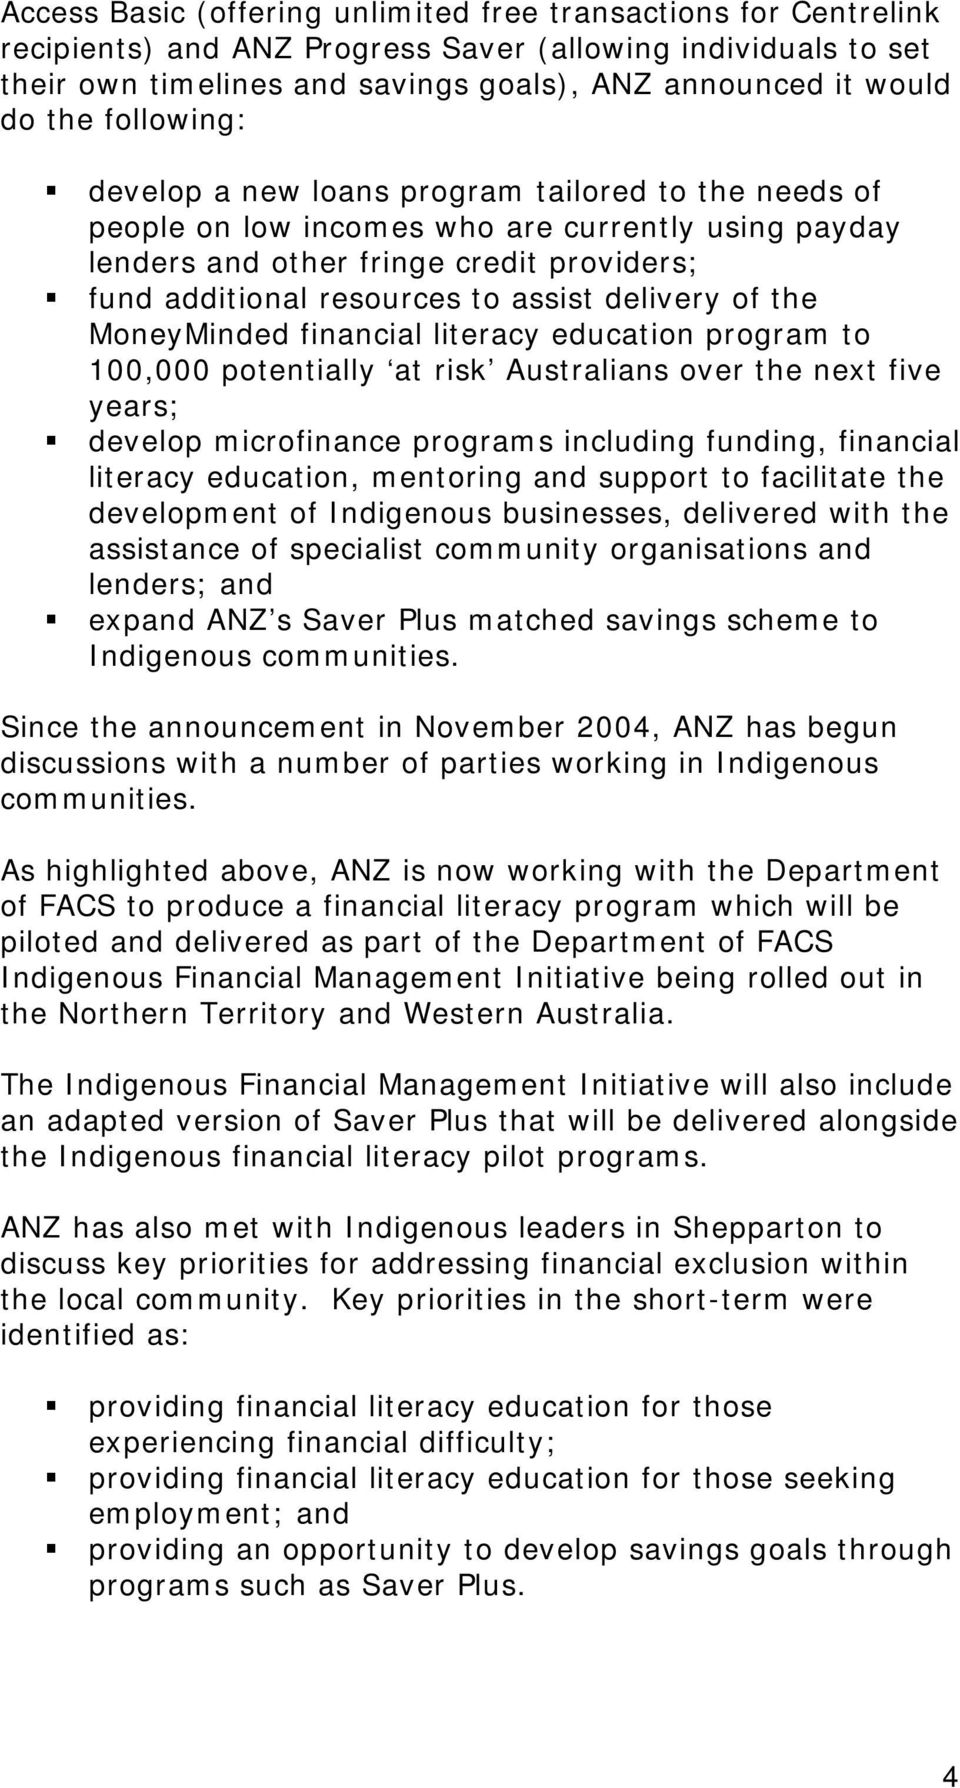 delivery of the MoneyMinded financial literacy education program to 100,000 potentially at risk Australians over the next five years; develop microfinance programs including funding, financial